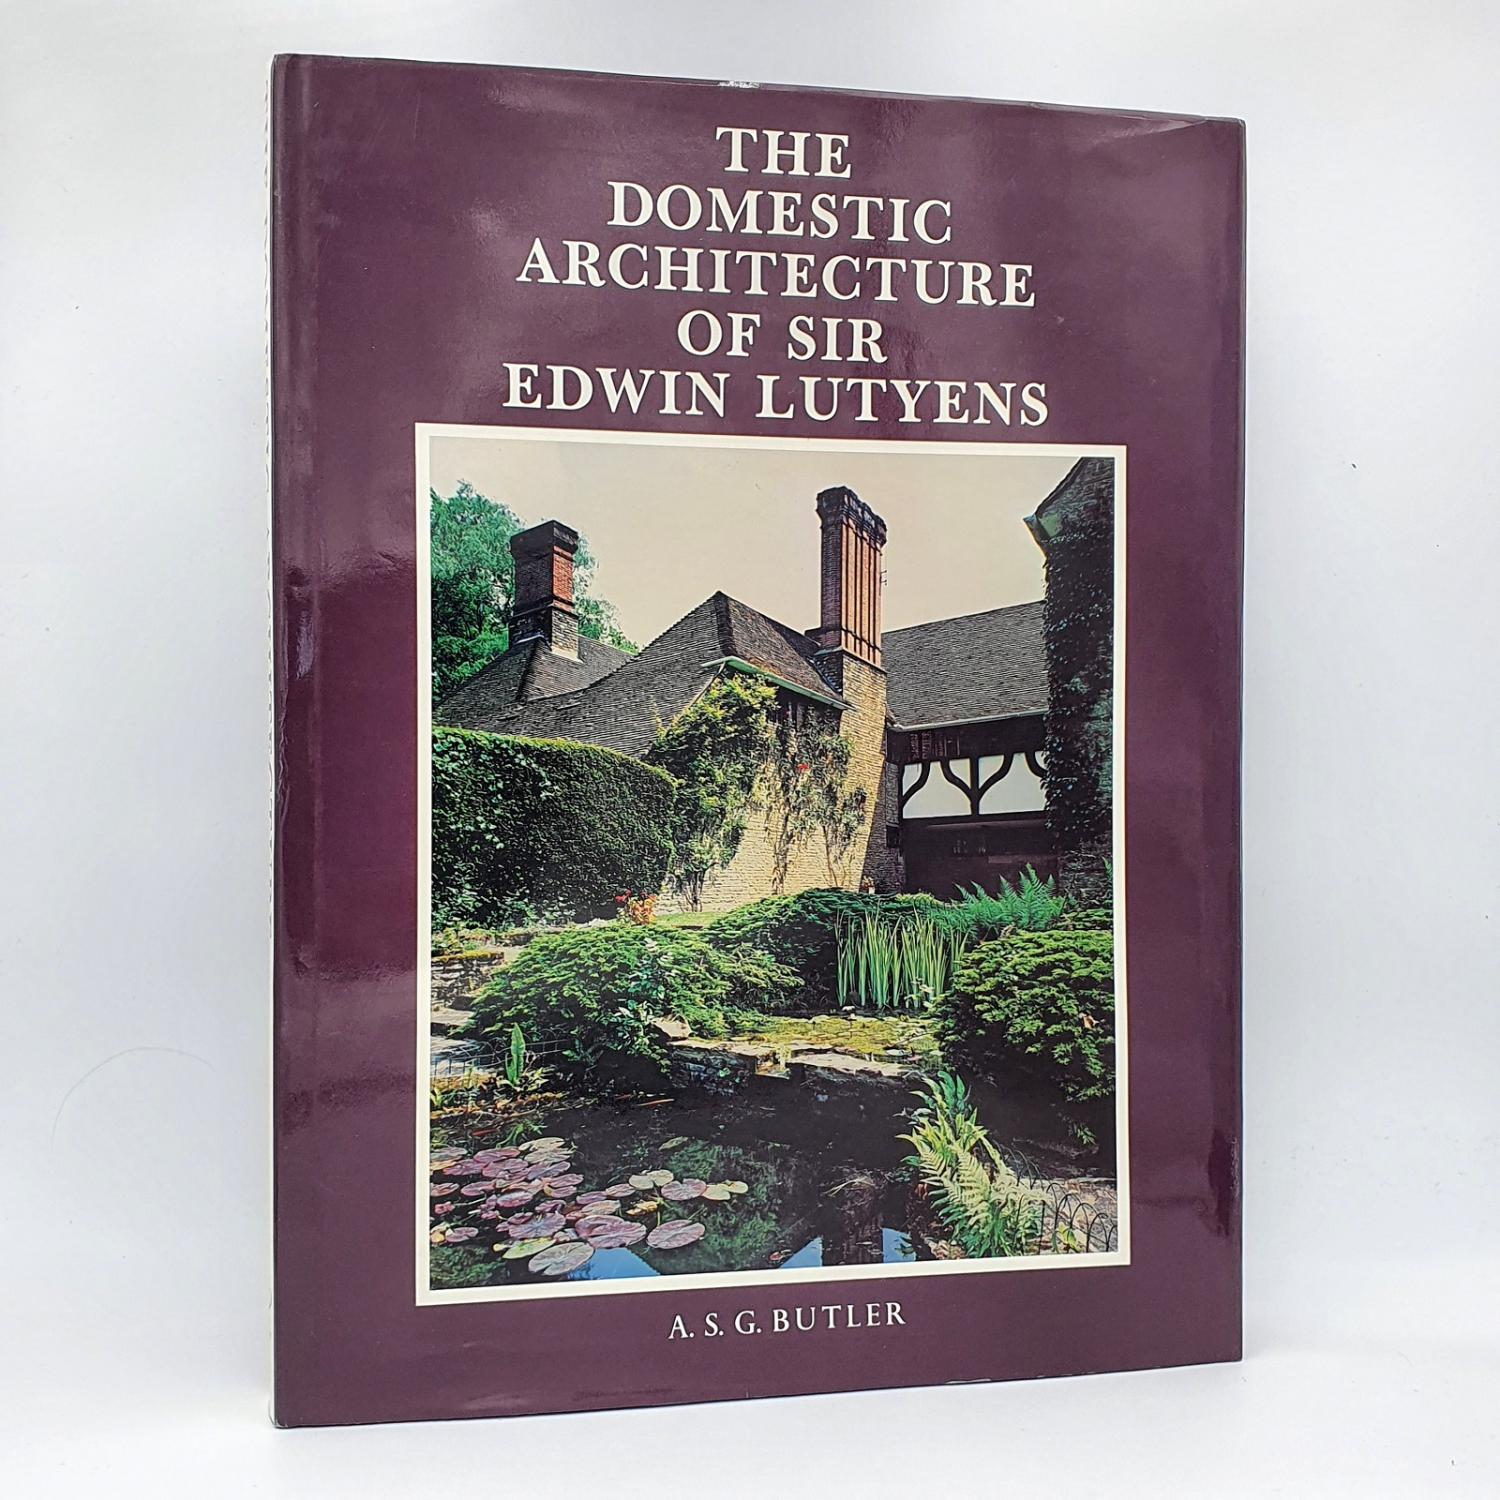 The Domestic Architecture of Sir Edwin Lutyens. - A. S. G. Butler. With the collaboration of George Stewart & Christopher Hussey.